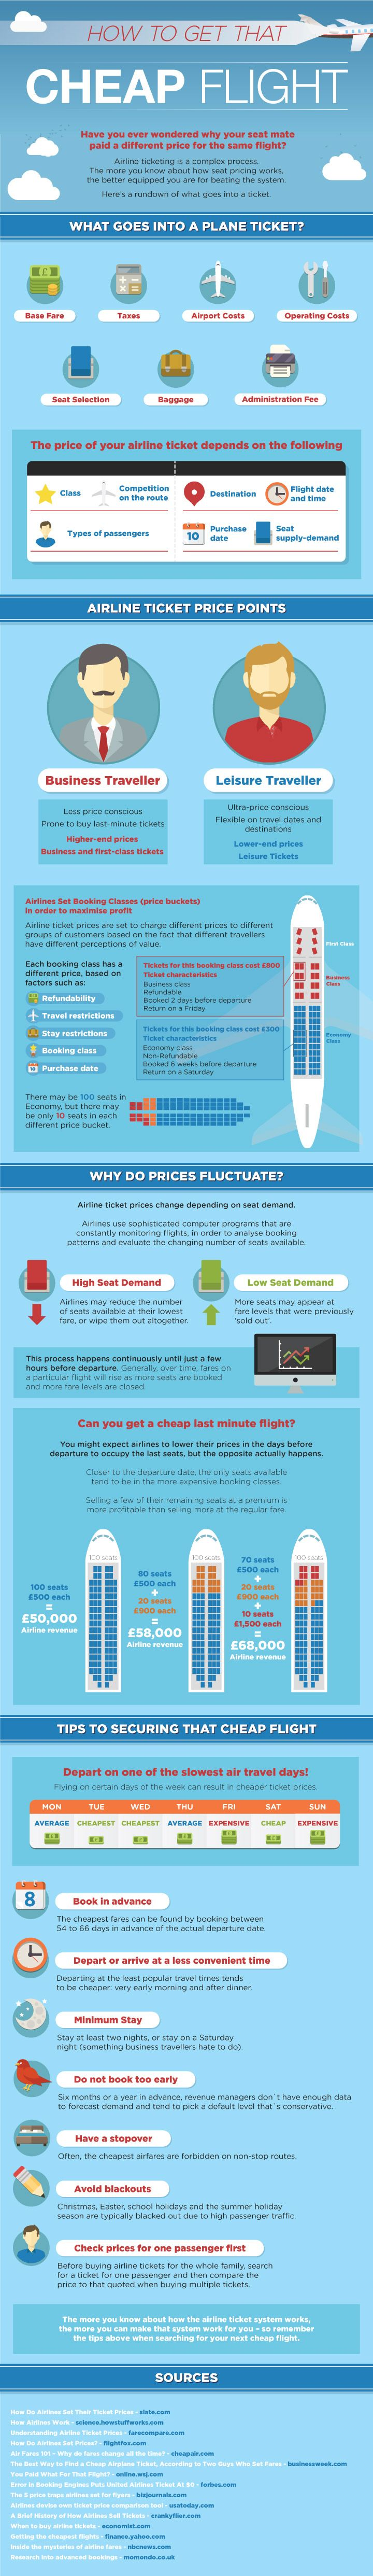 iTips: ••HOW to get CHEAP FLIGHTS•• infographic • airlines are a racket just as the Stock market volatility: non-sensical / inconsistent • airplane seat is cheapest part - most goes to local taxes! • price fluctuation due seat demand thru constant monitoring (fuel cost is lie since they buy futures) (high demand = less cheap seats avail) • cheapest flights: on slowest days: Tue/Wed + book min 54 days ahead but not too early + depart/arr at less convenient times + stopover + avoid blackouts